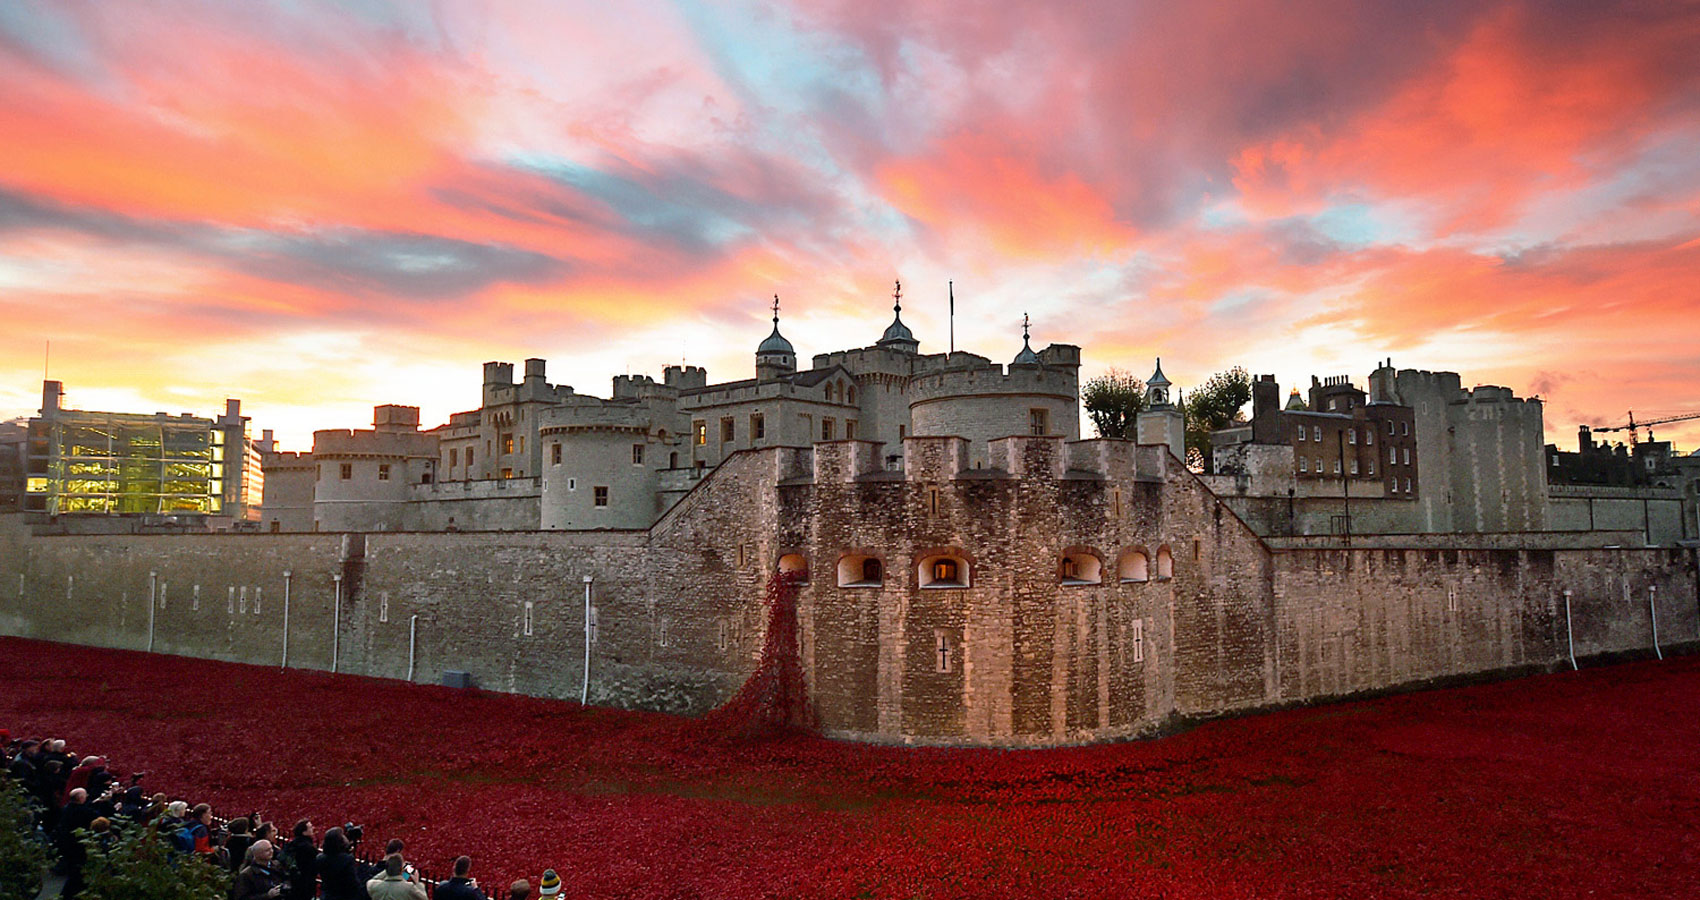 A pause on armistice day by Ian Thompson at Spillwords.com